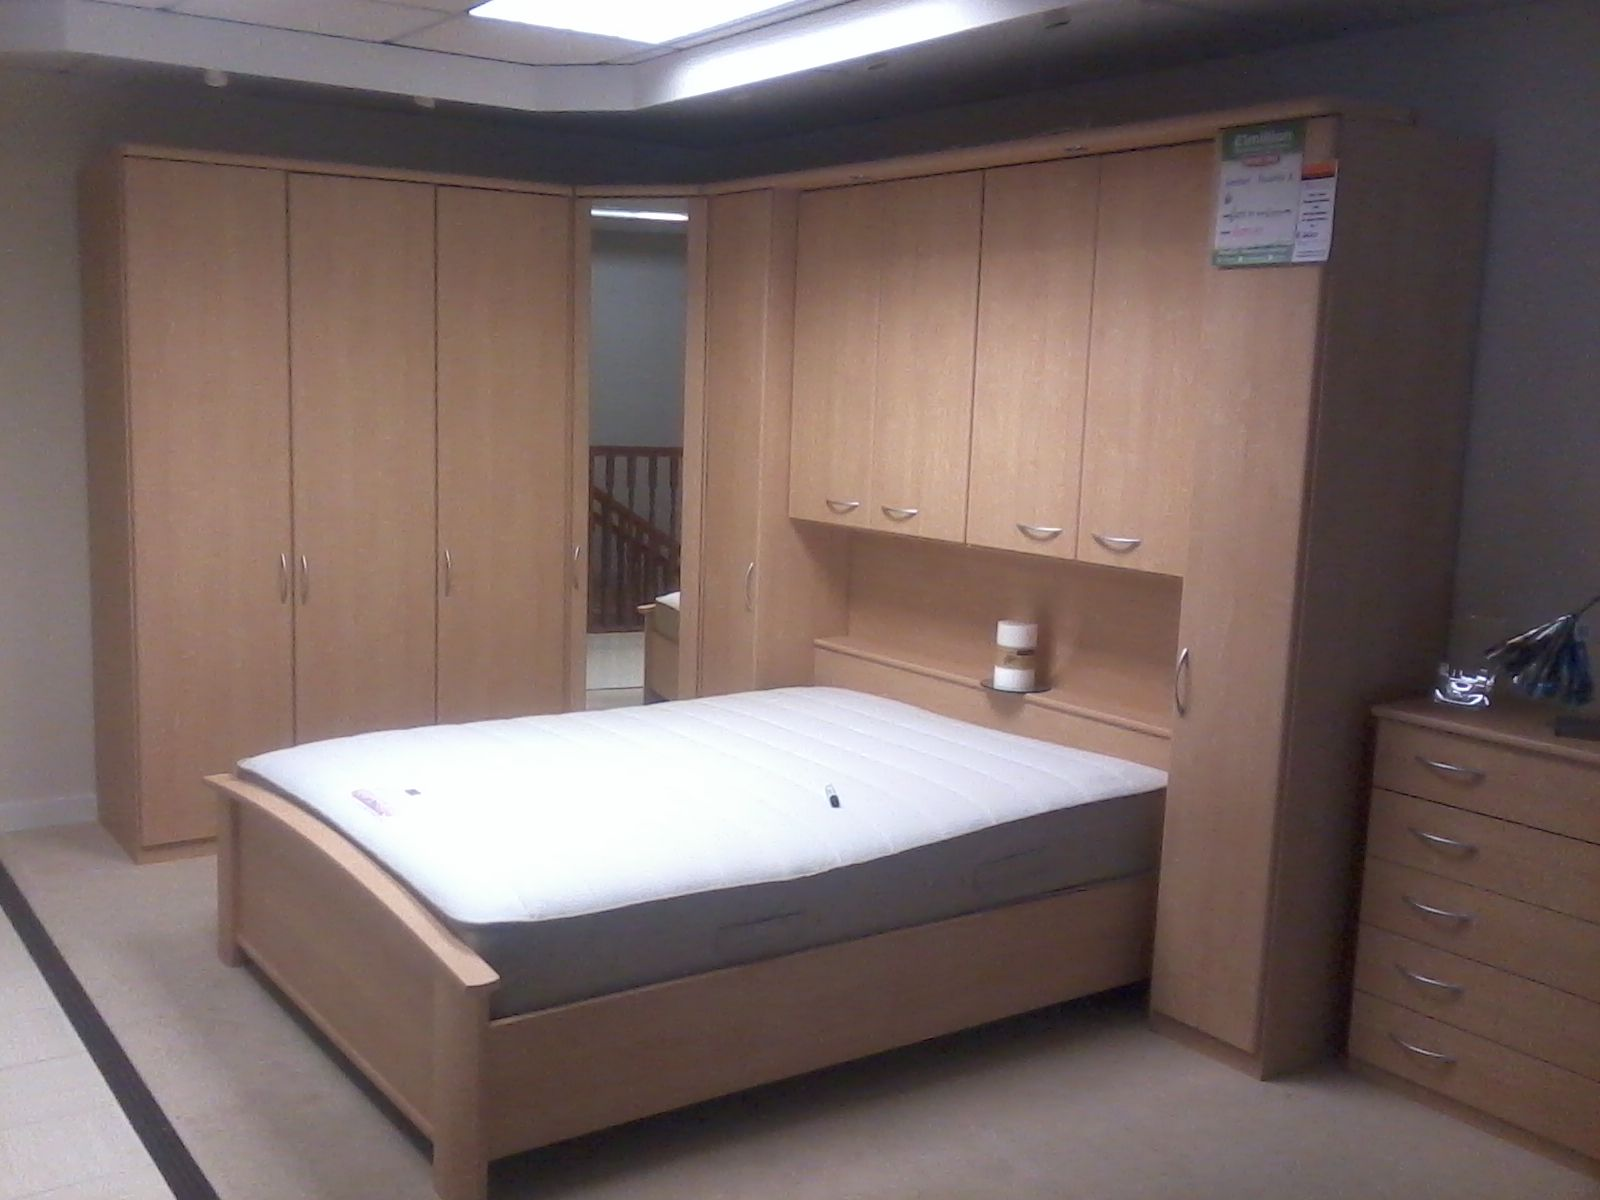 Roma Bedroom for sale at AHF Boongate NOW!